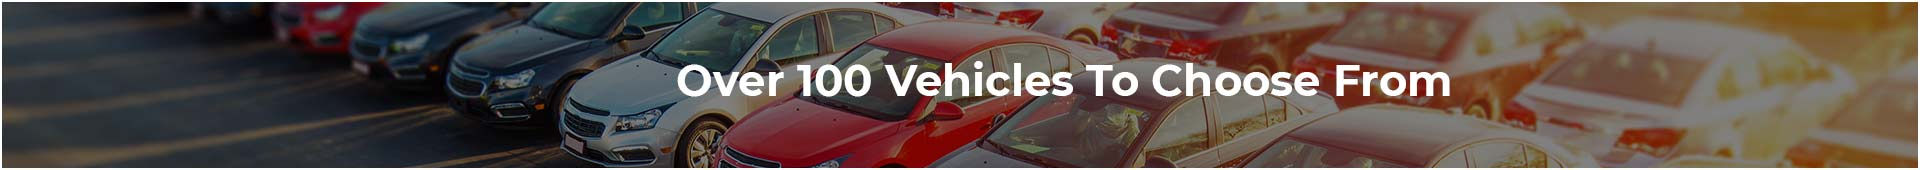 Over 100 Vehicles to Choose from